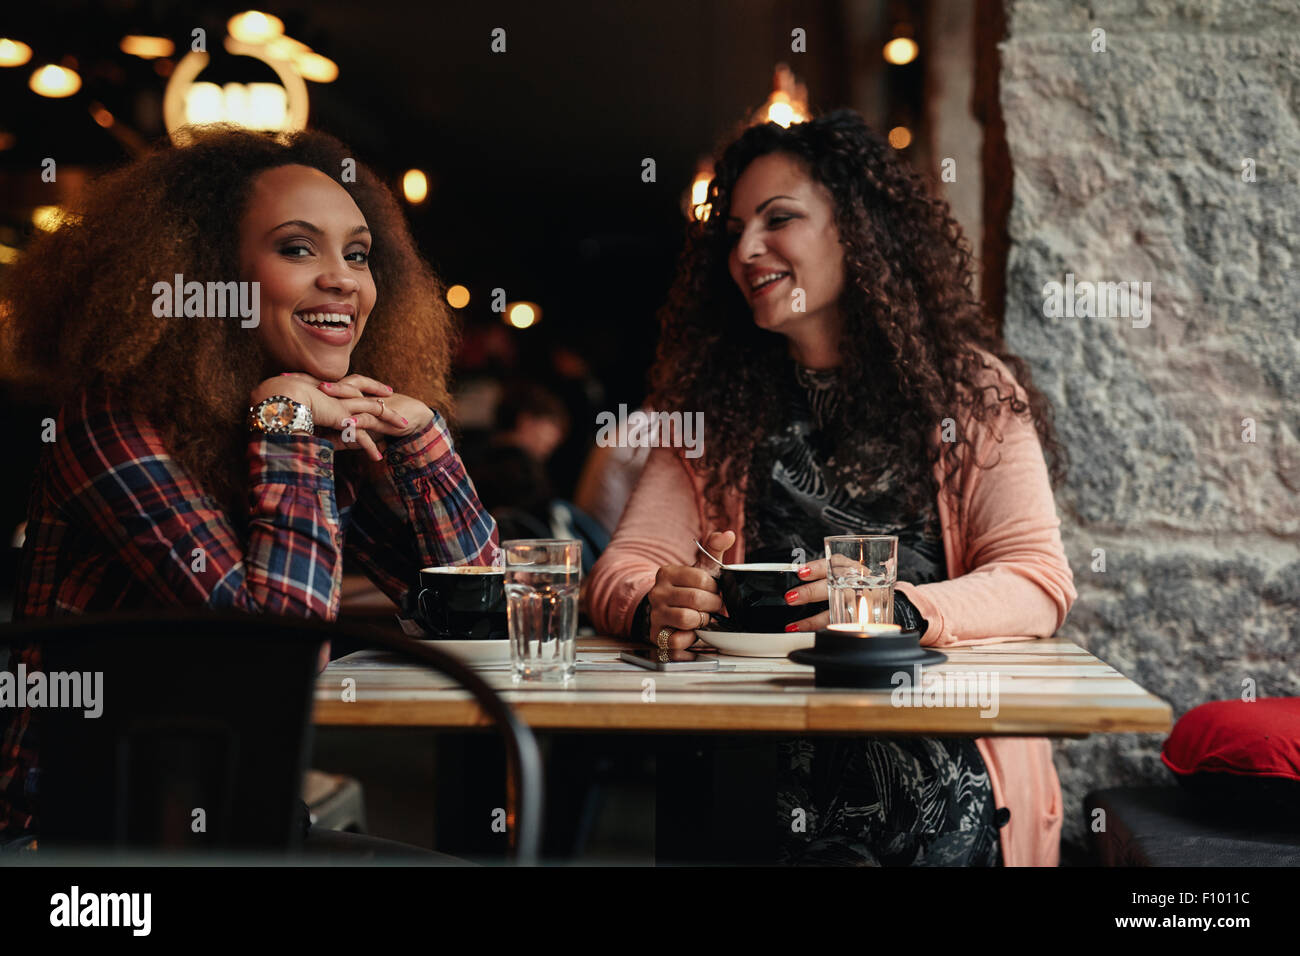 Two women sitting at a restaurant smiling. Young friends in a cafe, with one looking at camera smiling. - Stock Image